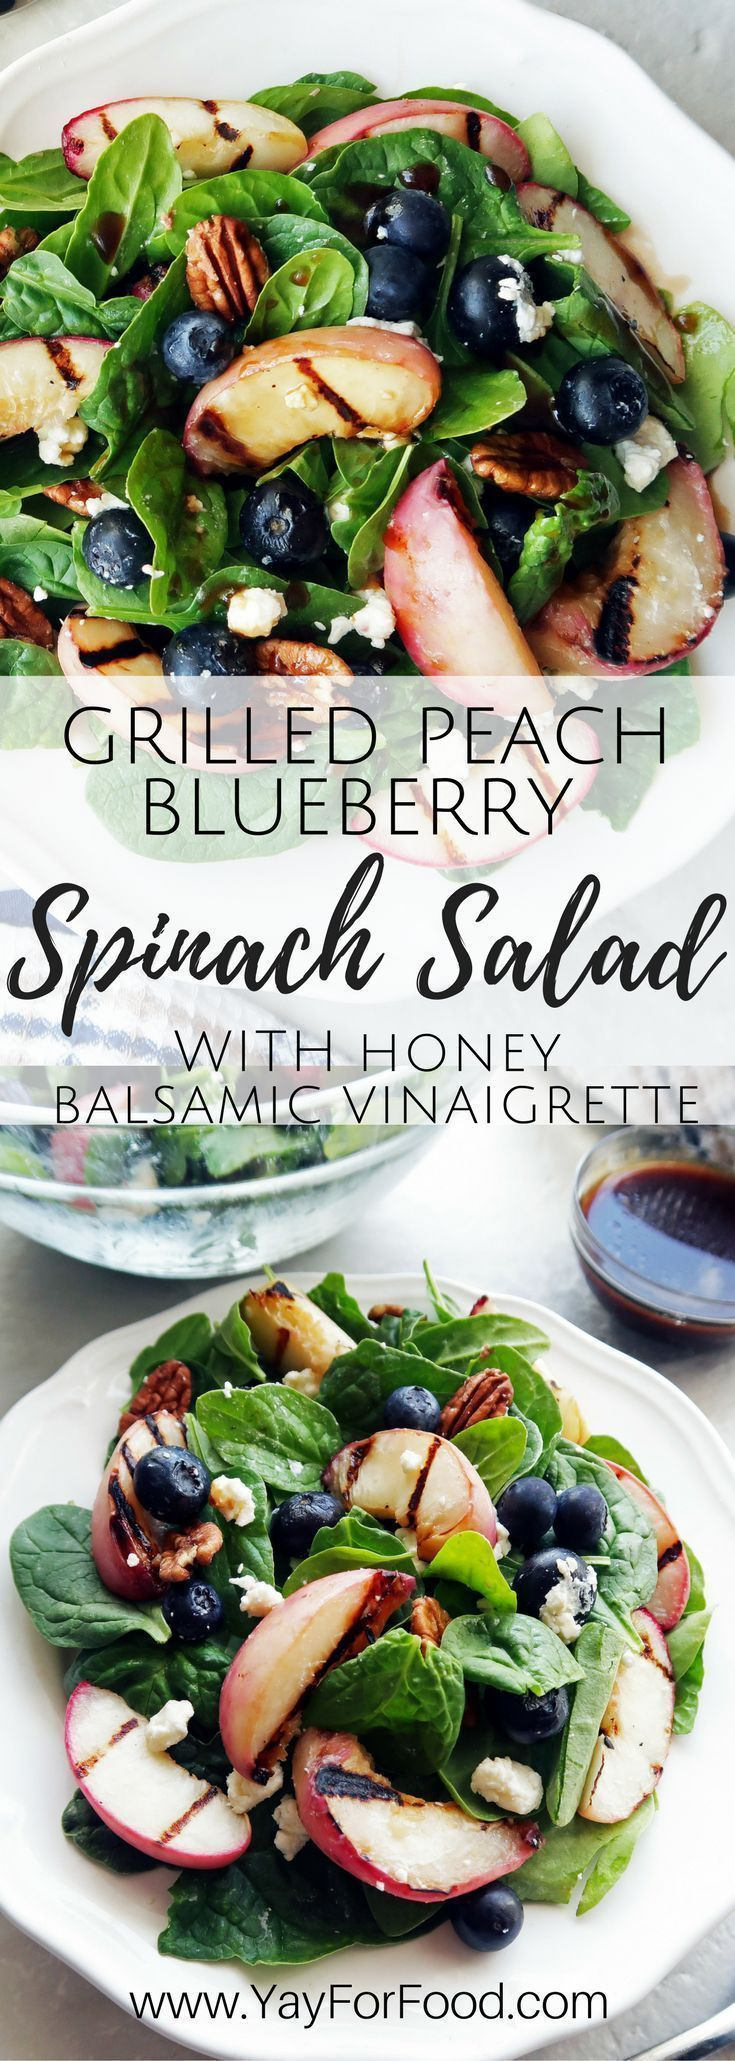 Grilled Peach Blueberry Spinach Salad with Honey Balsamic Vinaigrette –  #balsamic #blueberry…